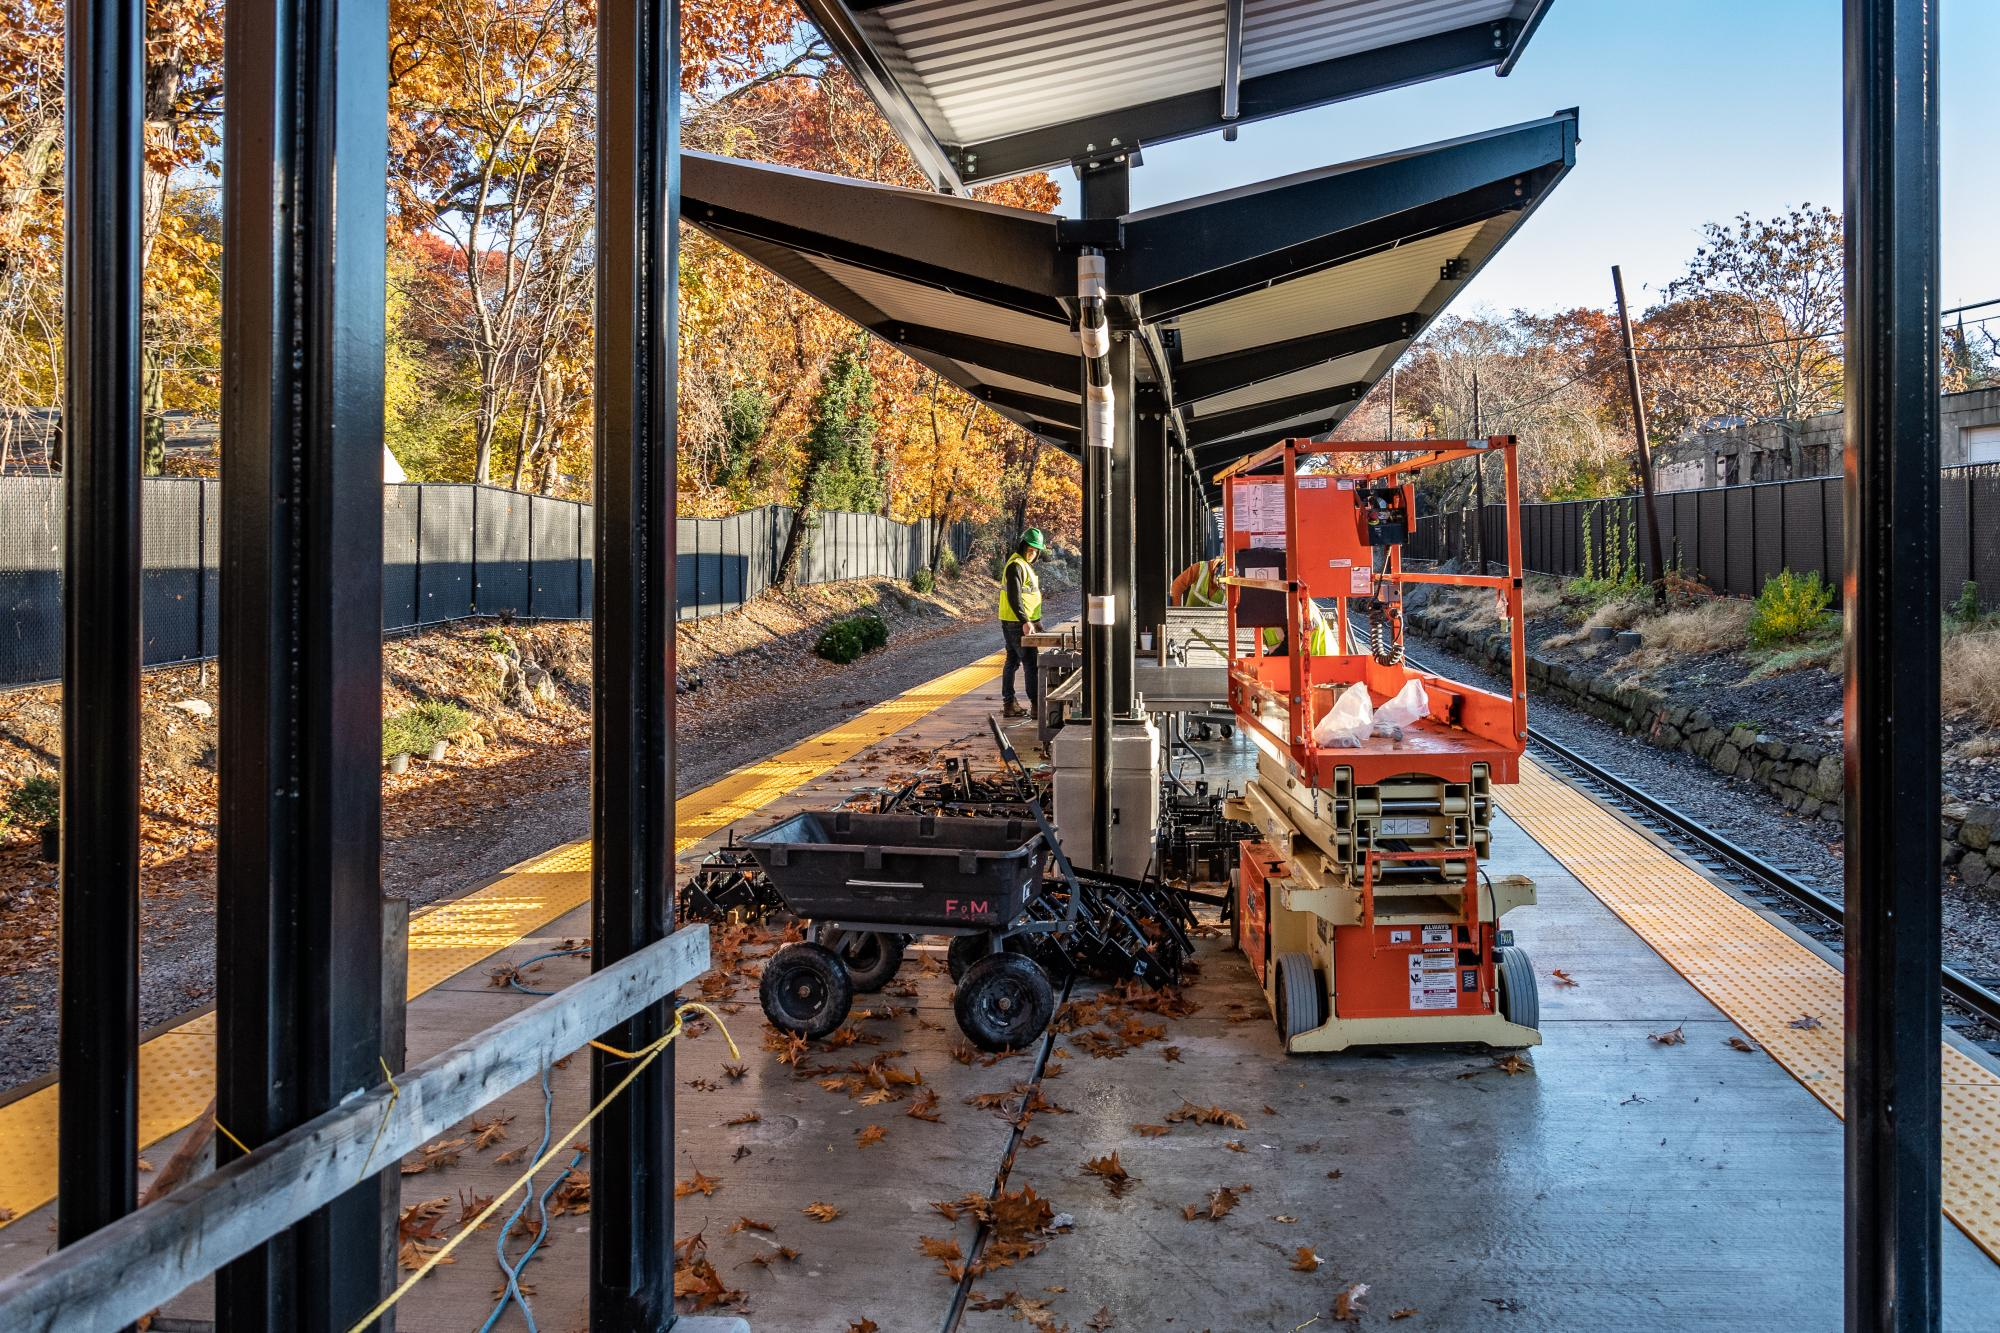 Blue Hill Ave station platform with canopy (November 2018)